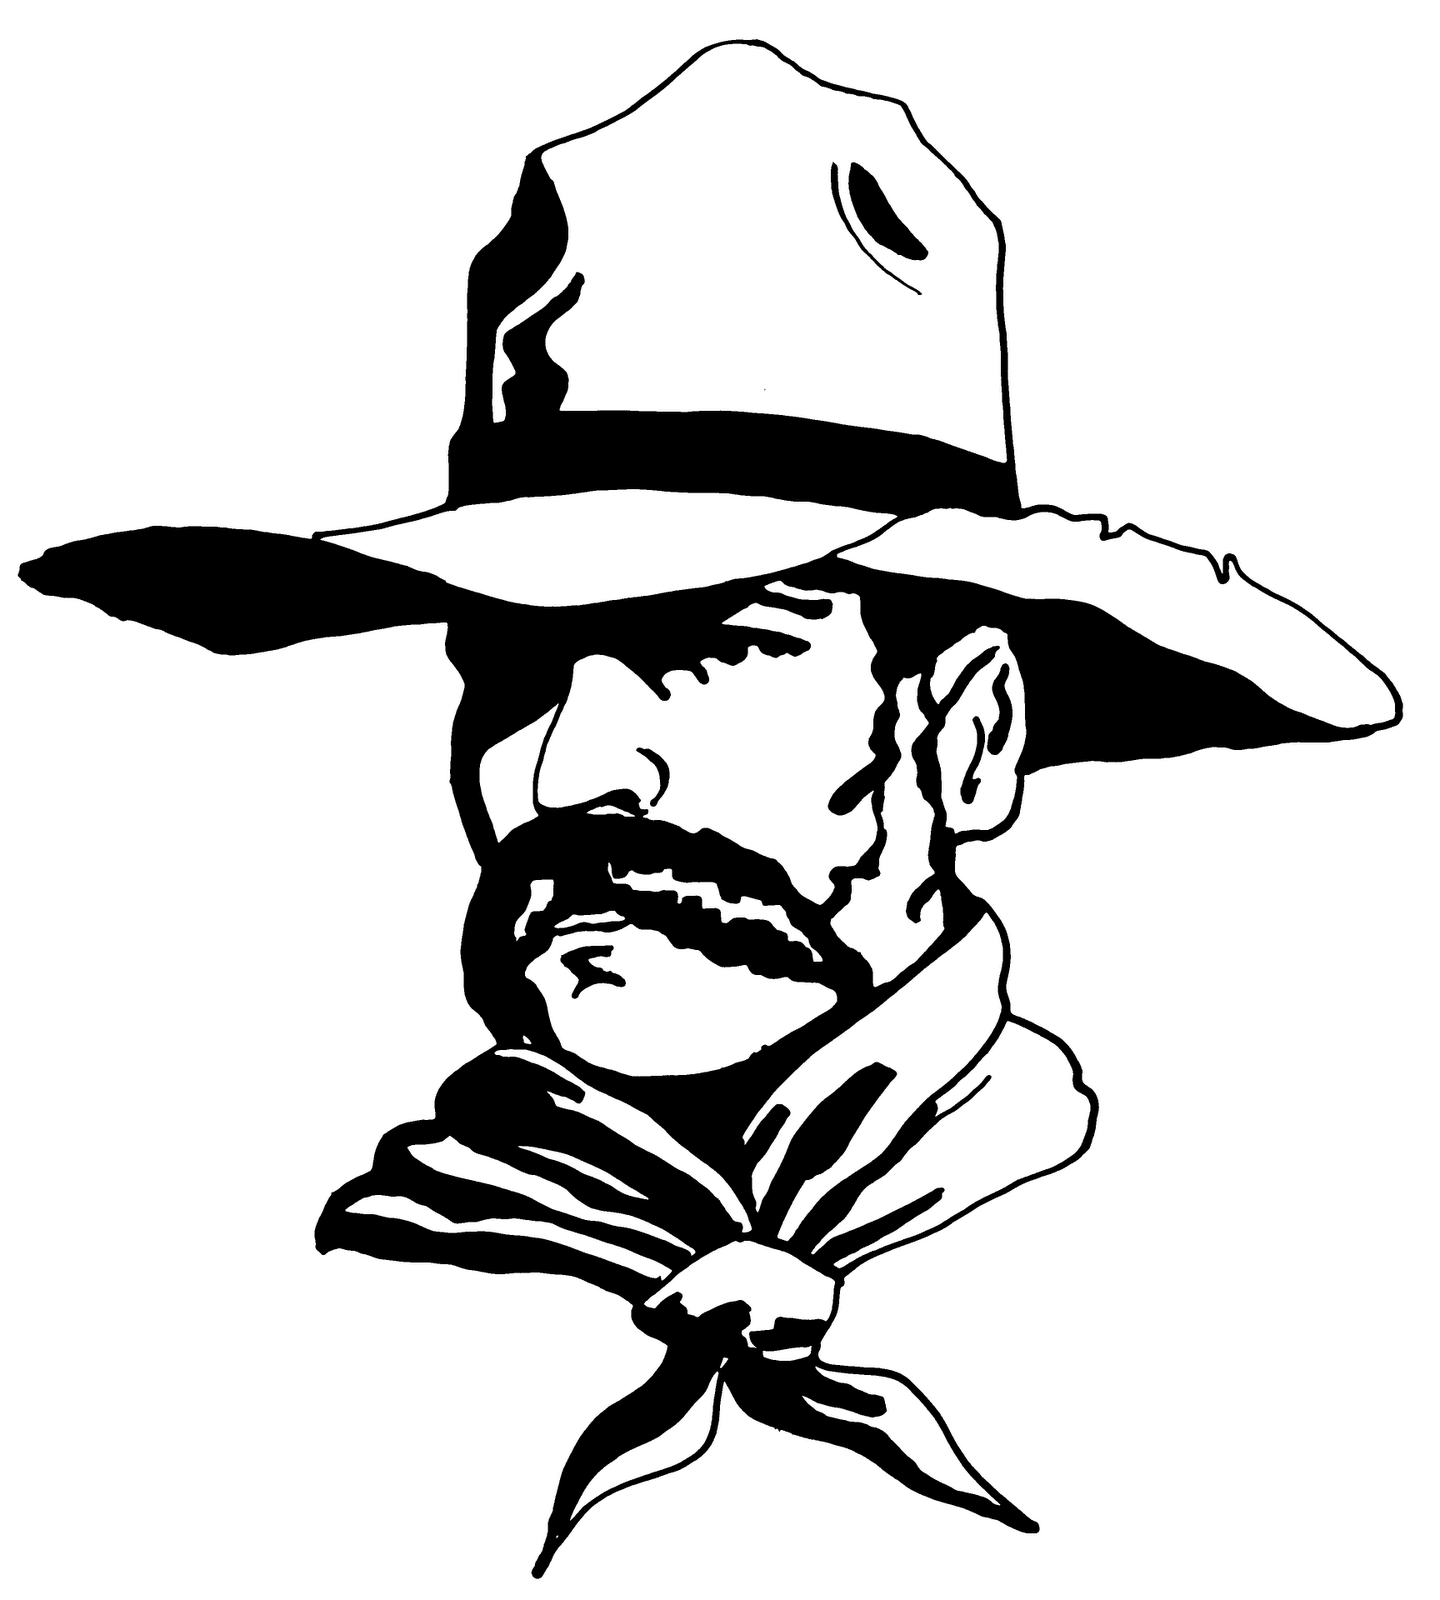 Free black and white. Cowboy clipart line